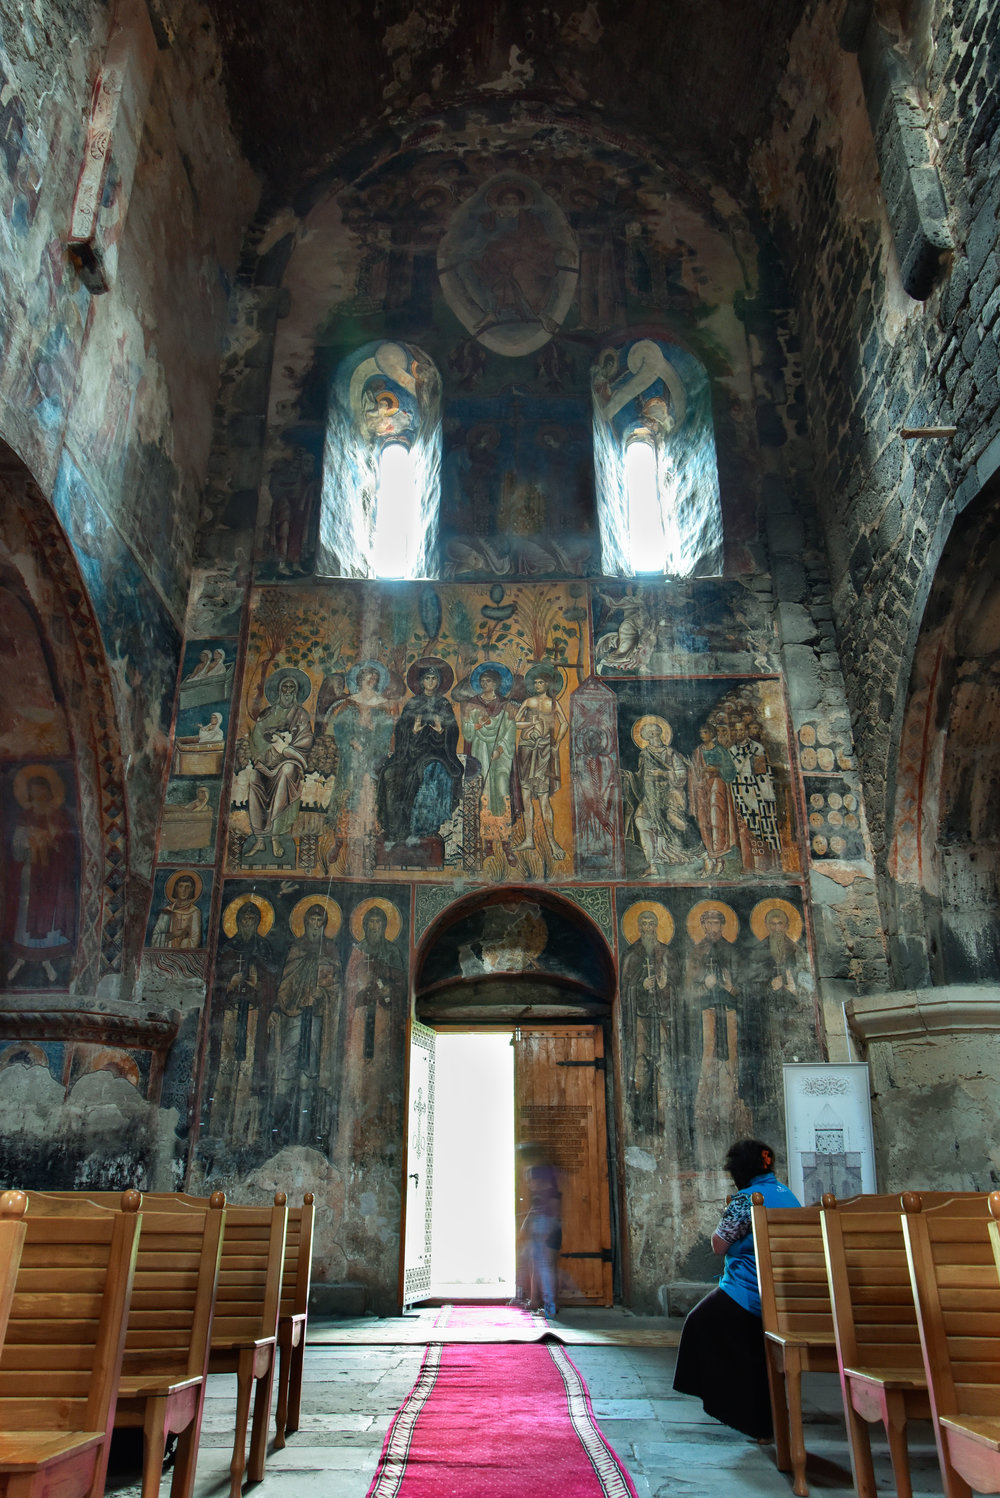 The interior is completely covered by the beautiful frescoes that have survived both time and wars over the centuries